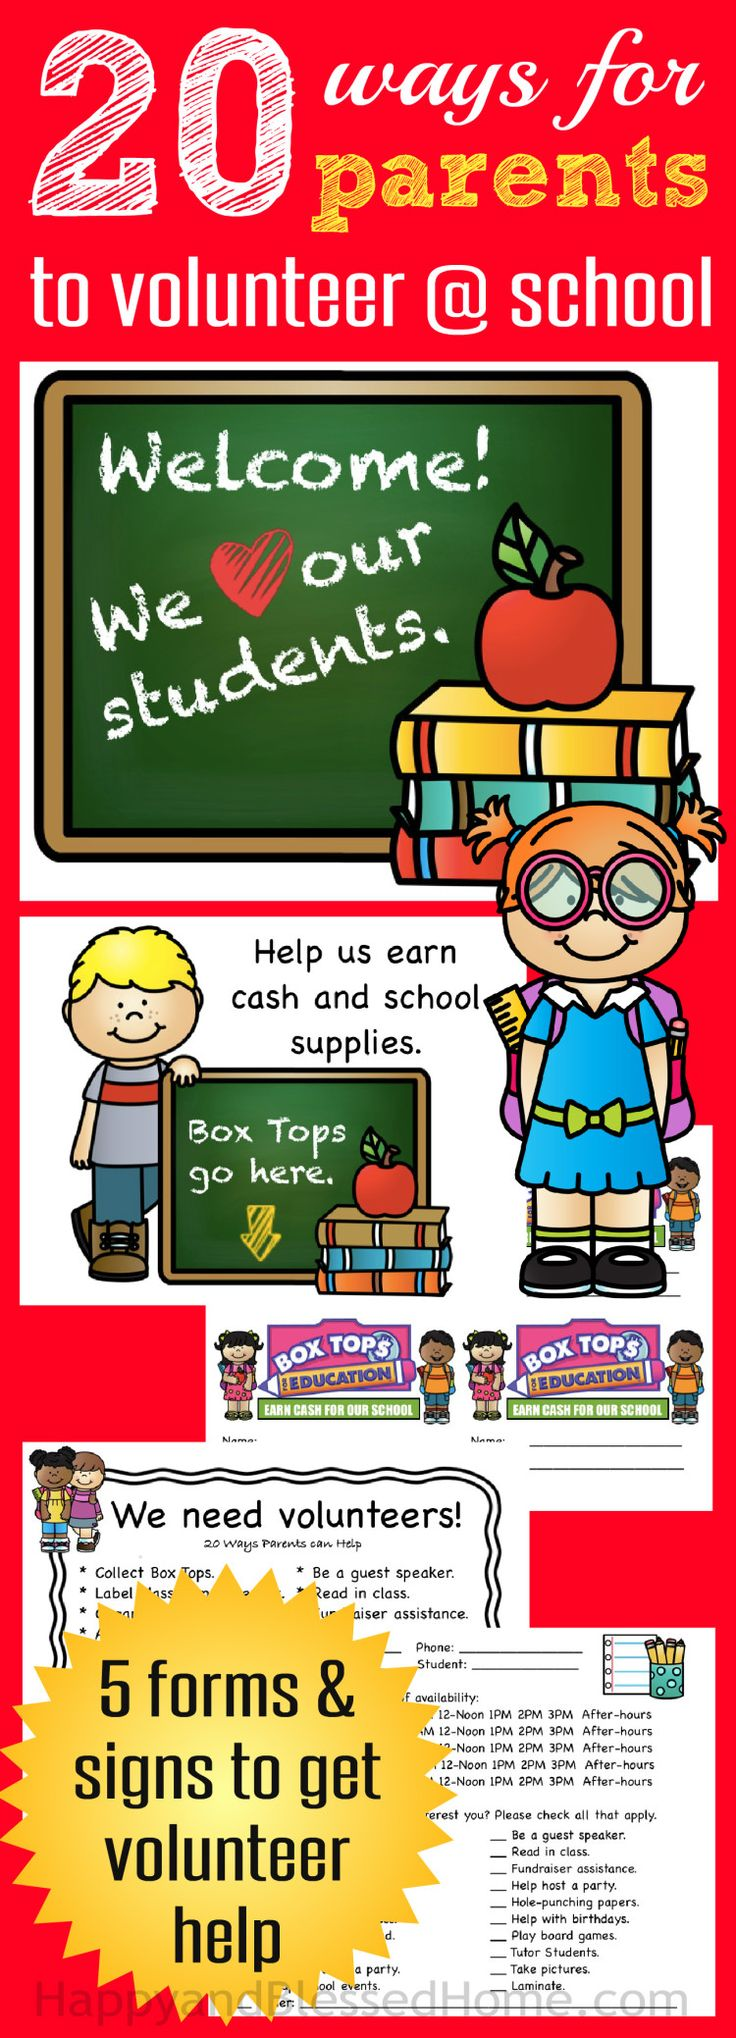 """FREE Printables with 20 Ways for Parents to Volunteer at School with 5 Forms and Signs to get Volunteers - perfect for Back to Shool. Plus Box Tops for Education inserts and a collect """"the box tops here"""" sign. Ad Inspired by Box Tops and the new school year!"""